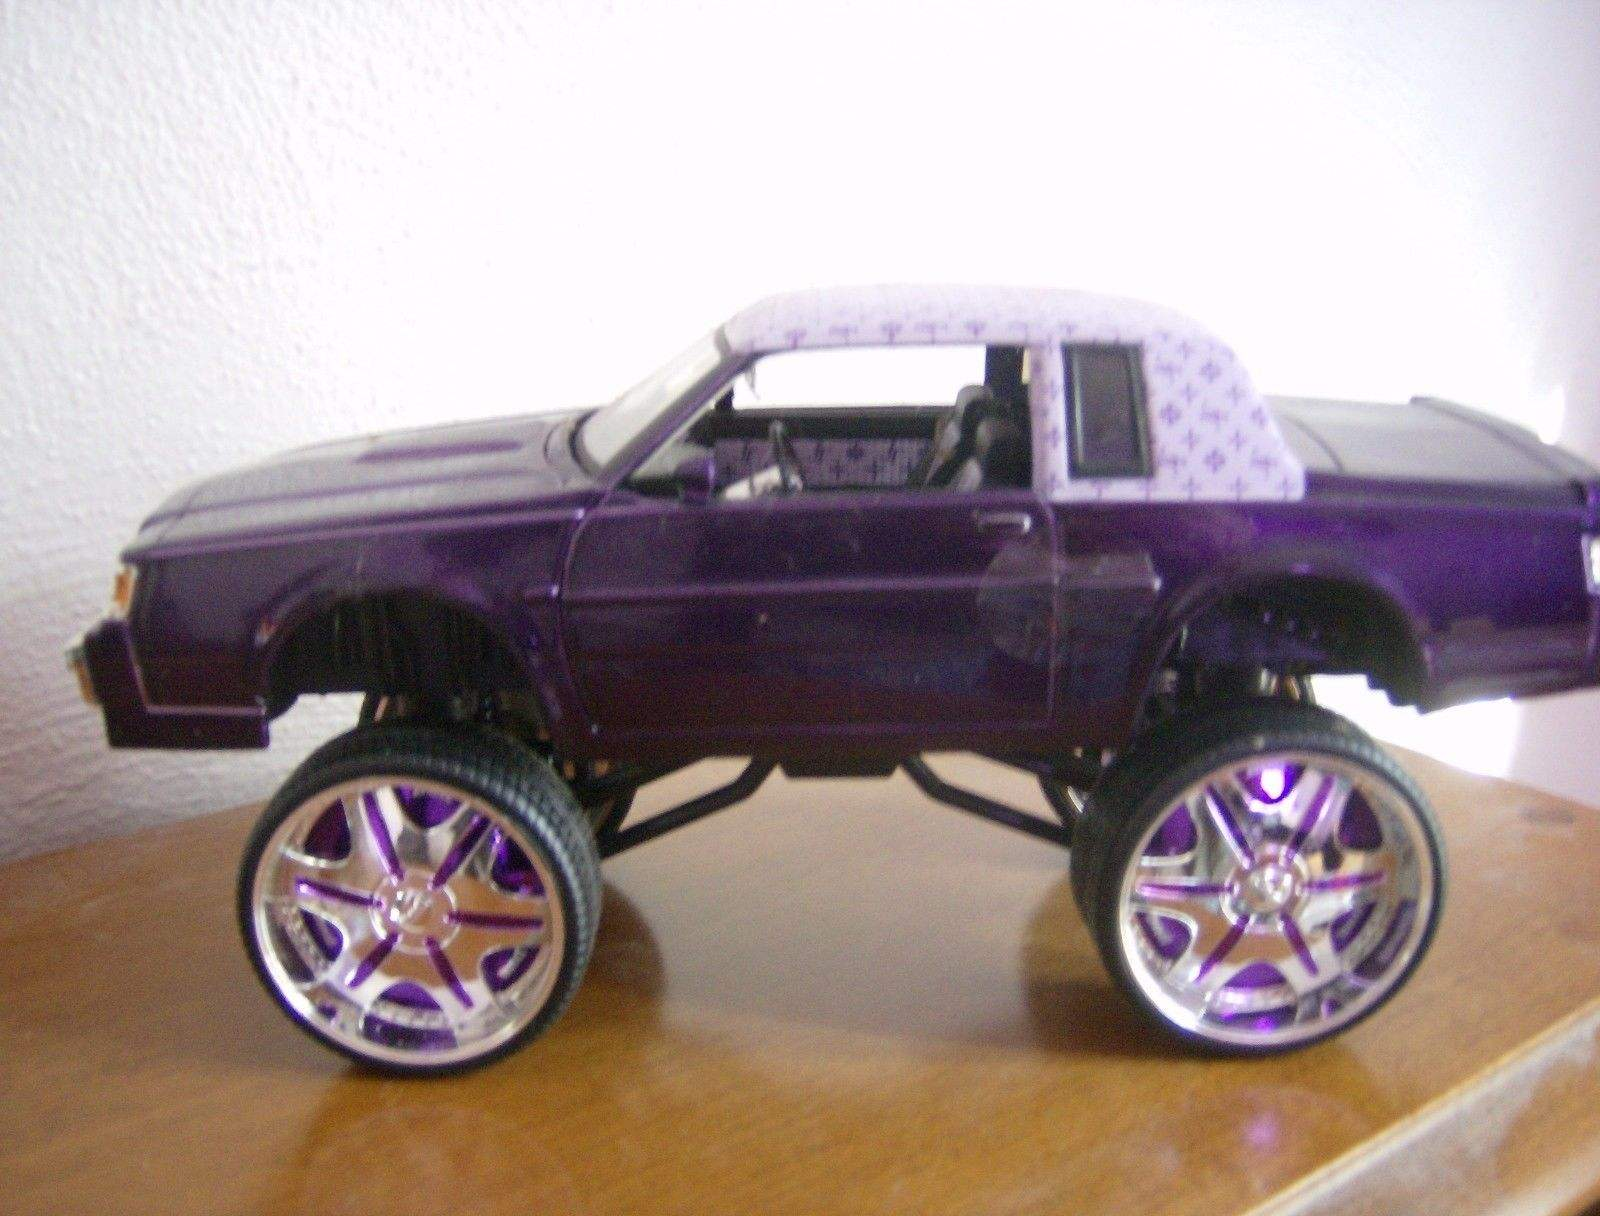 Buick Gnx For Sale >> Donk Box & Bubble 1987 Buick Regal 1:24 Scale